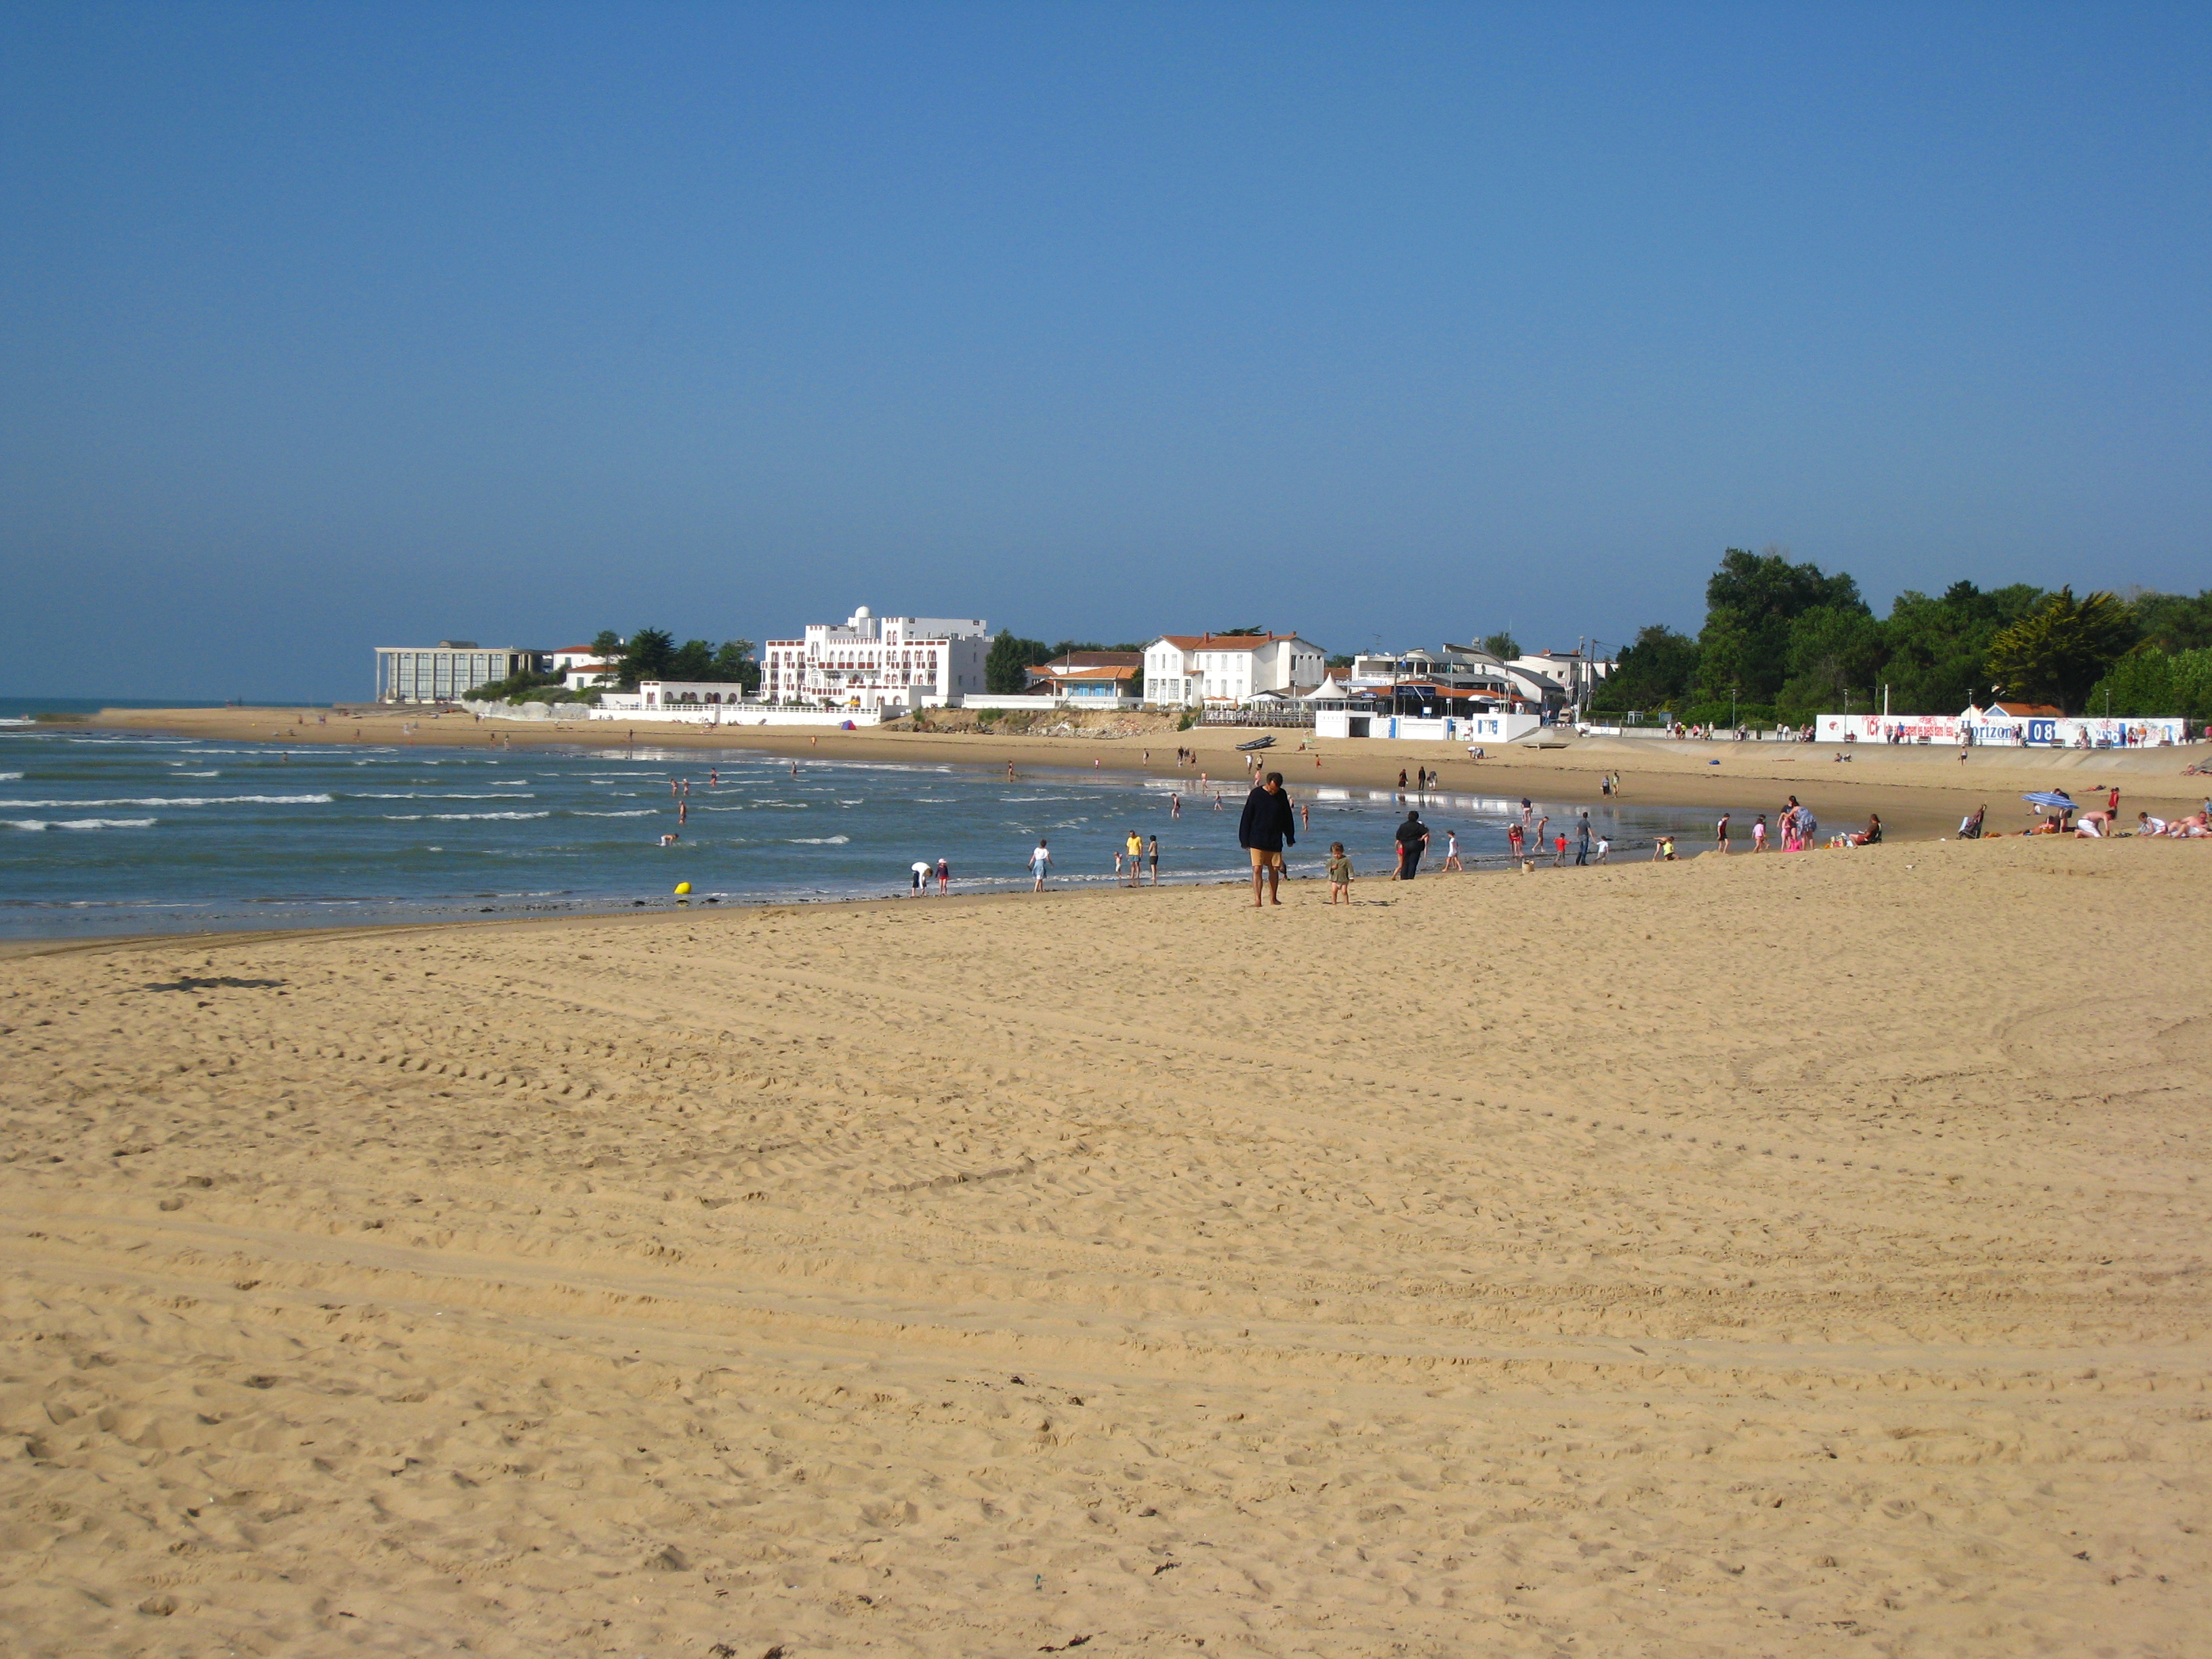 plage centrale de la tranche sur mer wikipedia. Black Bedroom Furniture Sets. Home Design Ideas